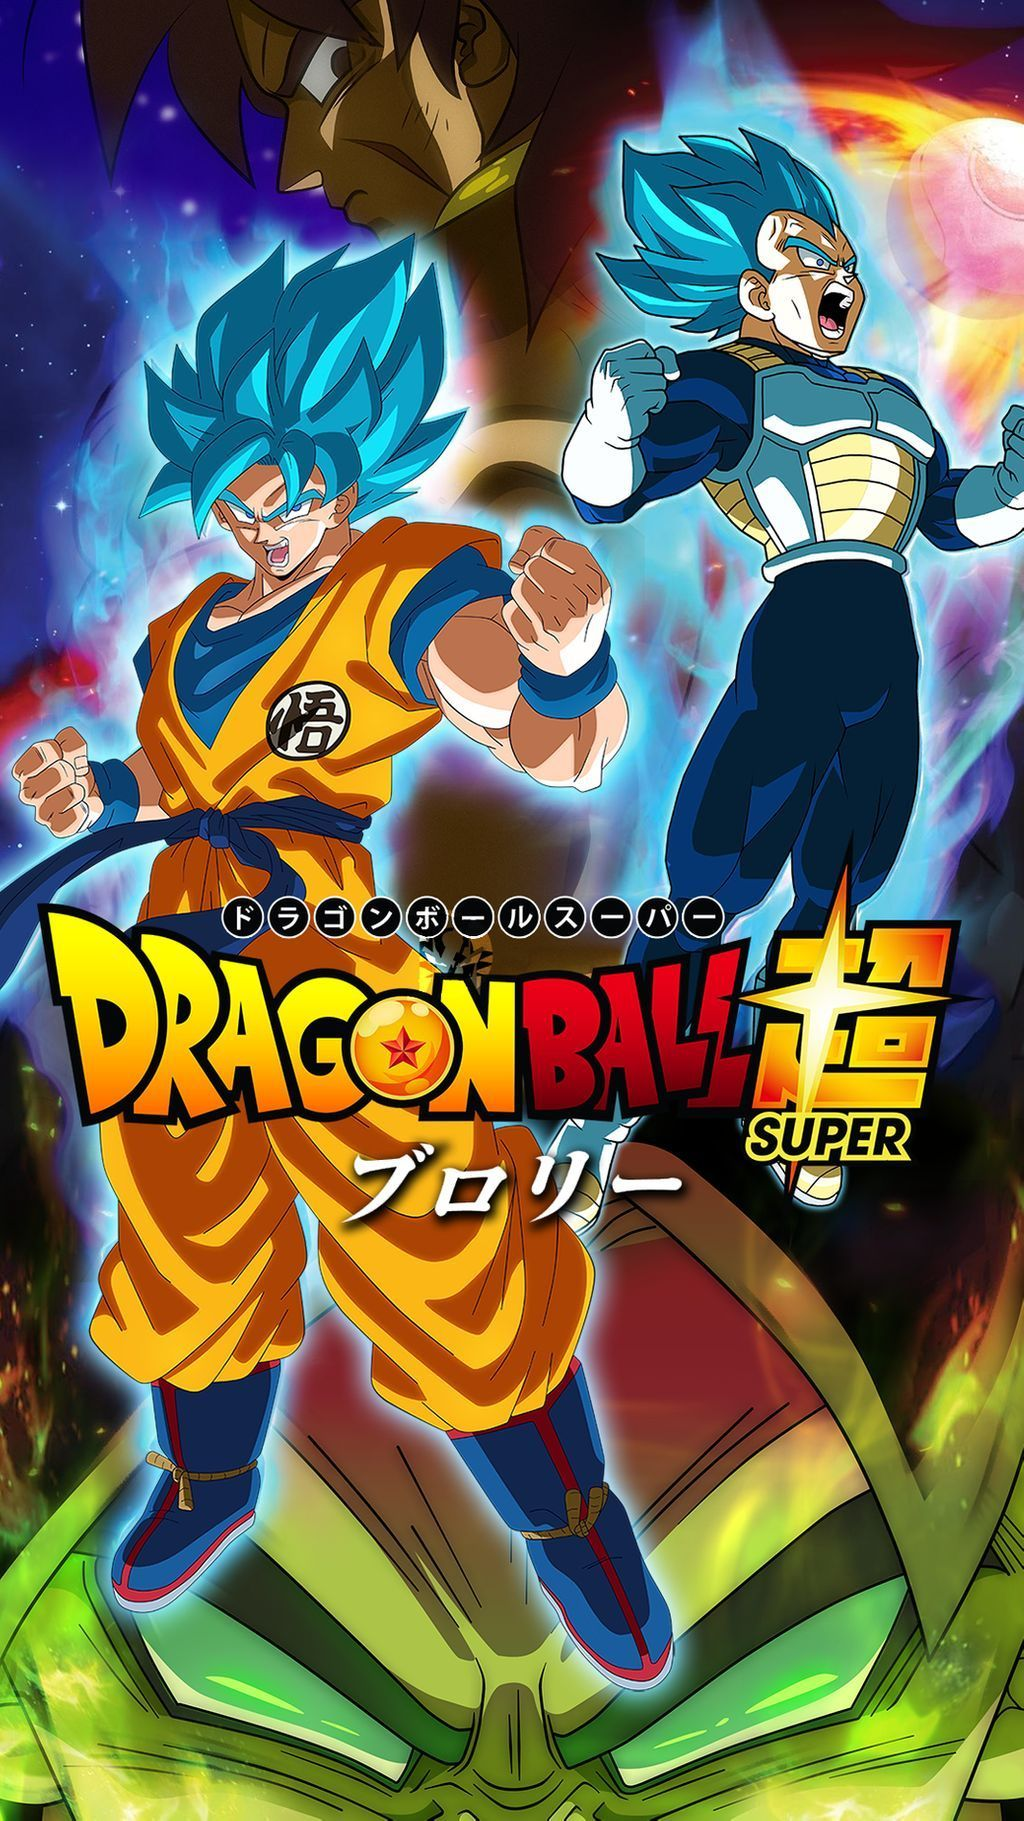 Dragon Ball Super Broly Phone Wallpaper Doraemon Dragon Ball Super Wallpapers Dragon Ball Super Manga Dragon Ball Wallpapers